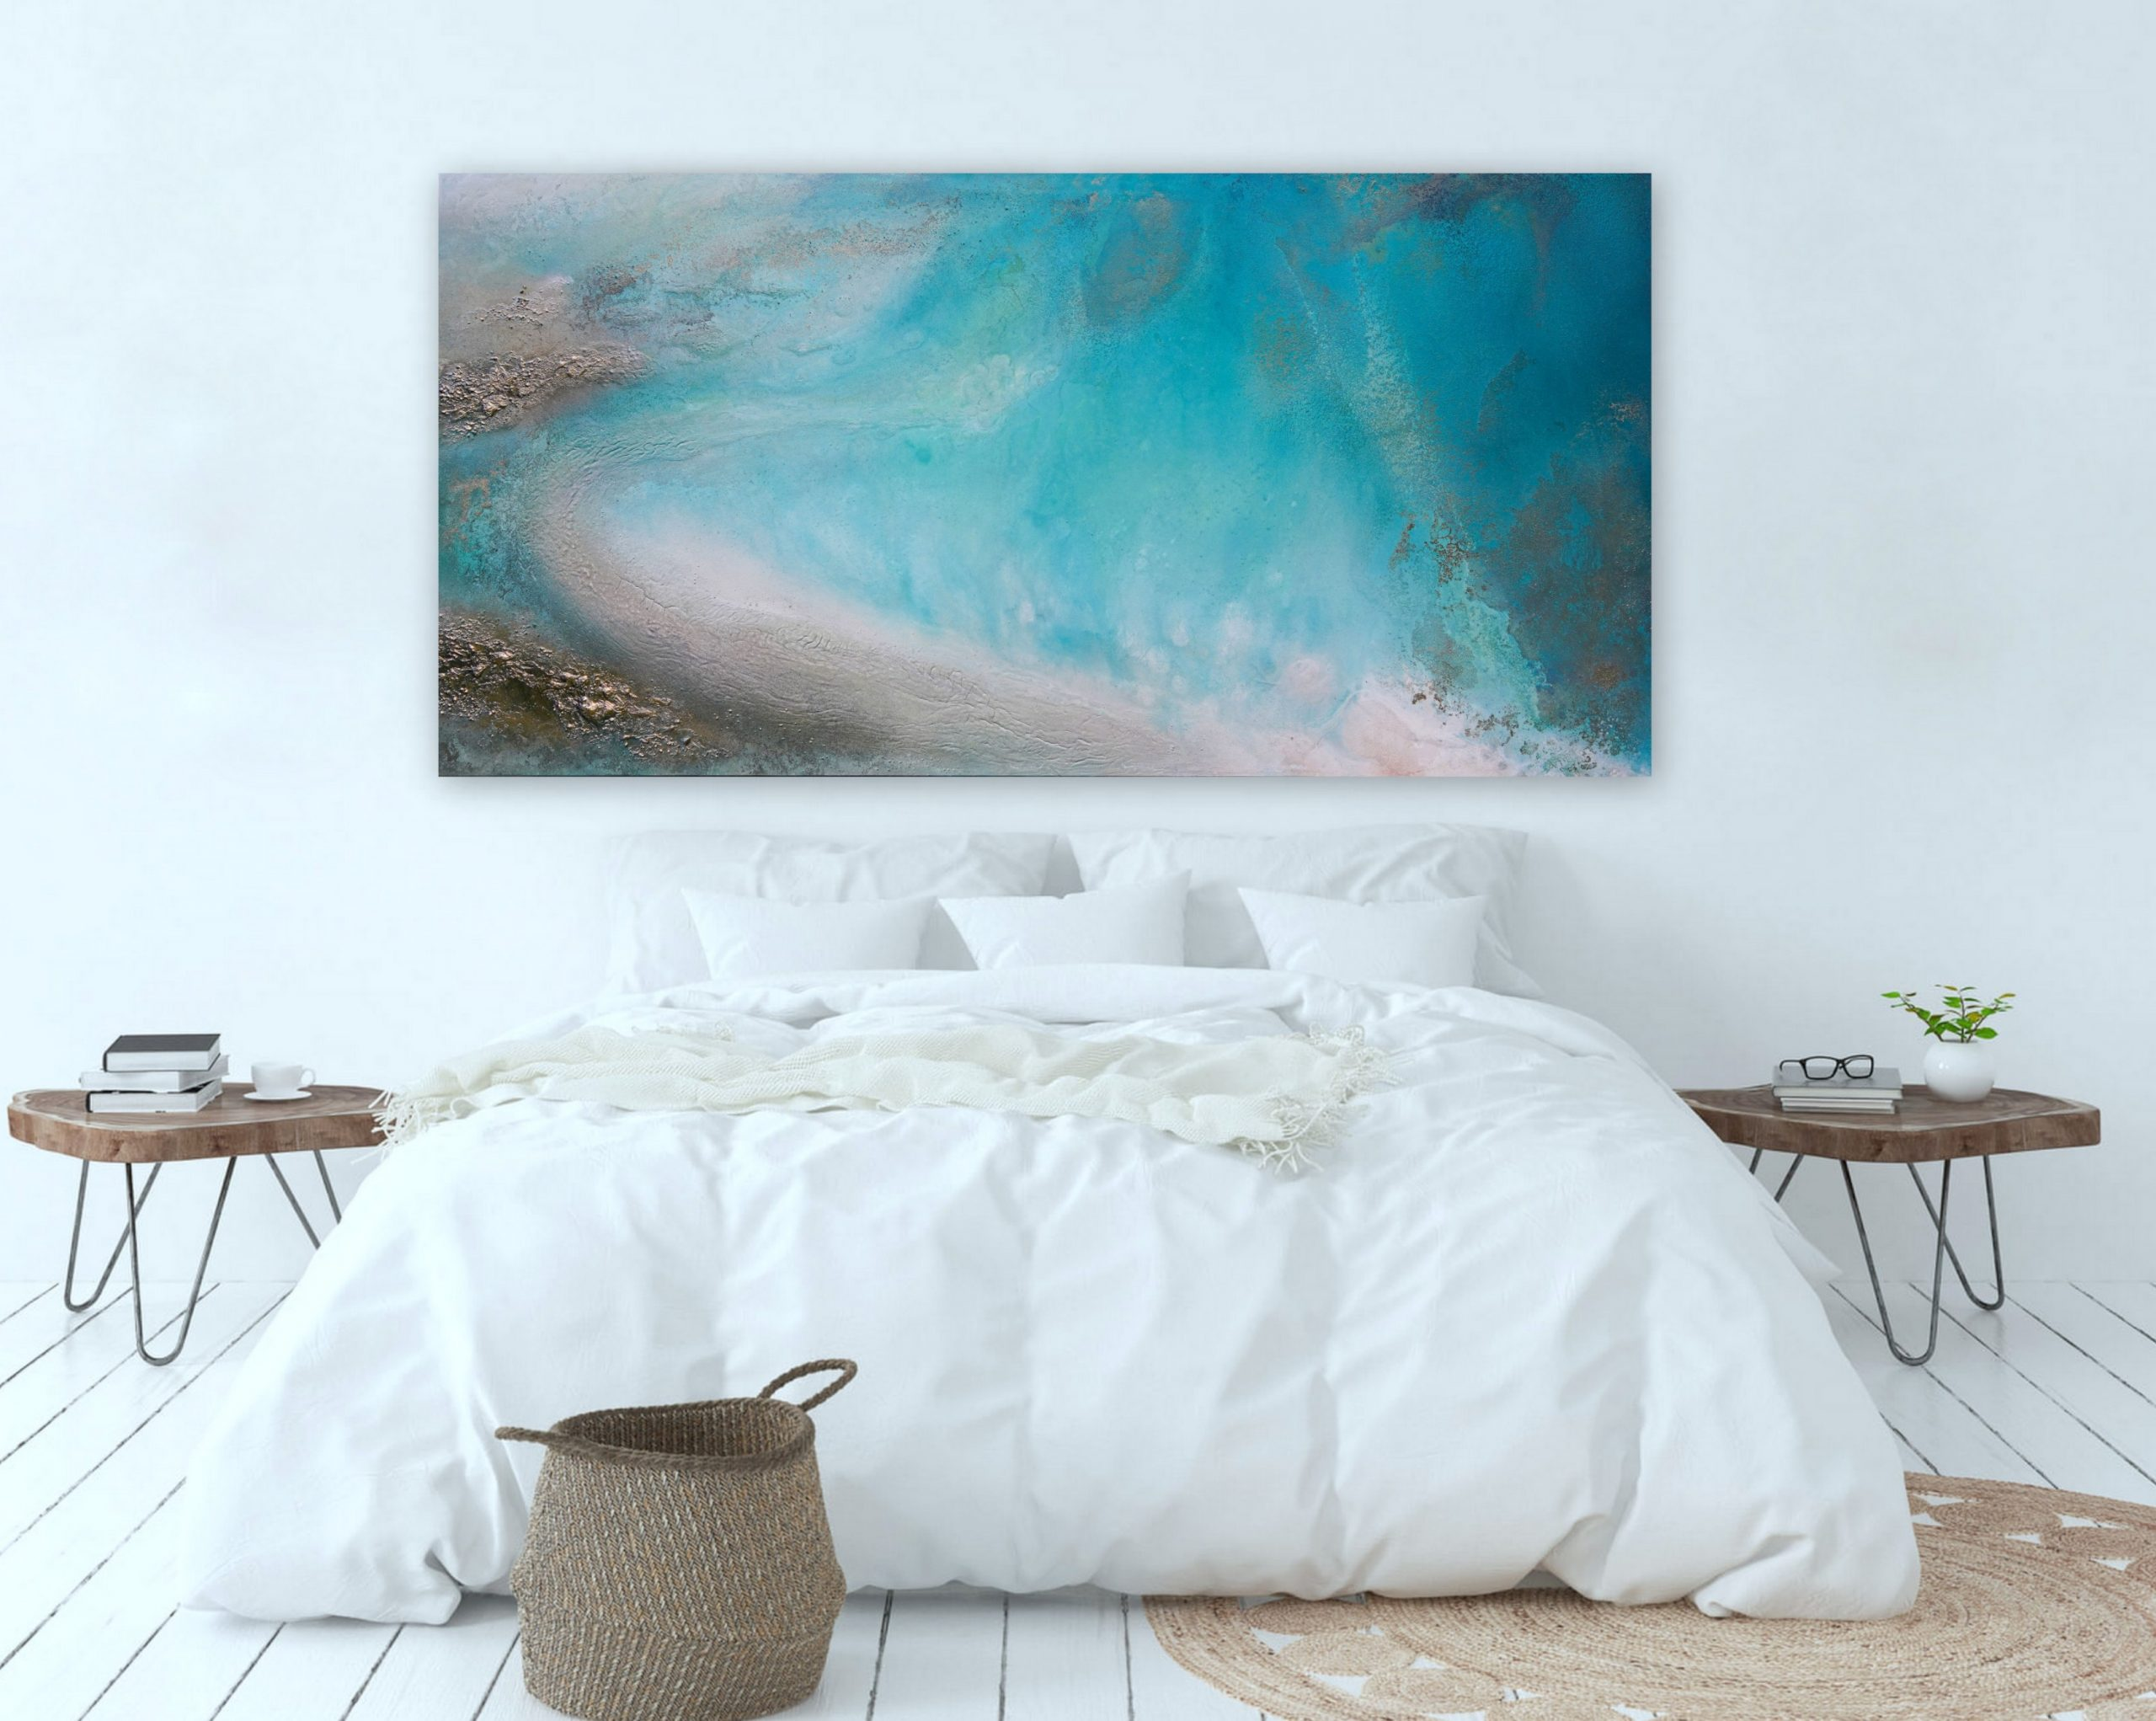 Large Abstract Wall Art By Petra Meikle De Vlas2